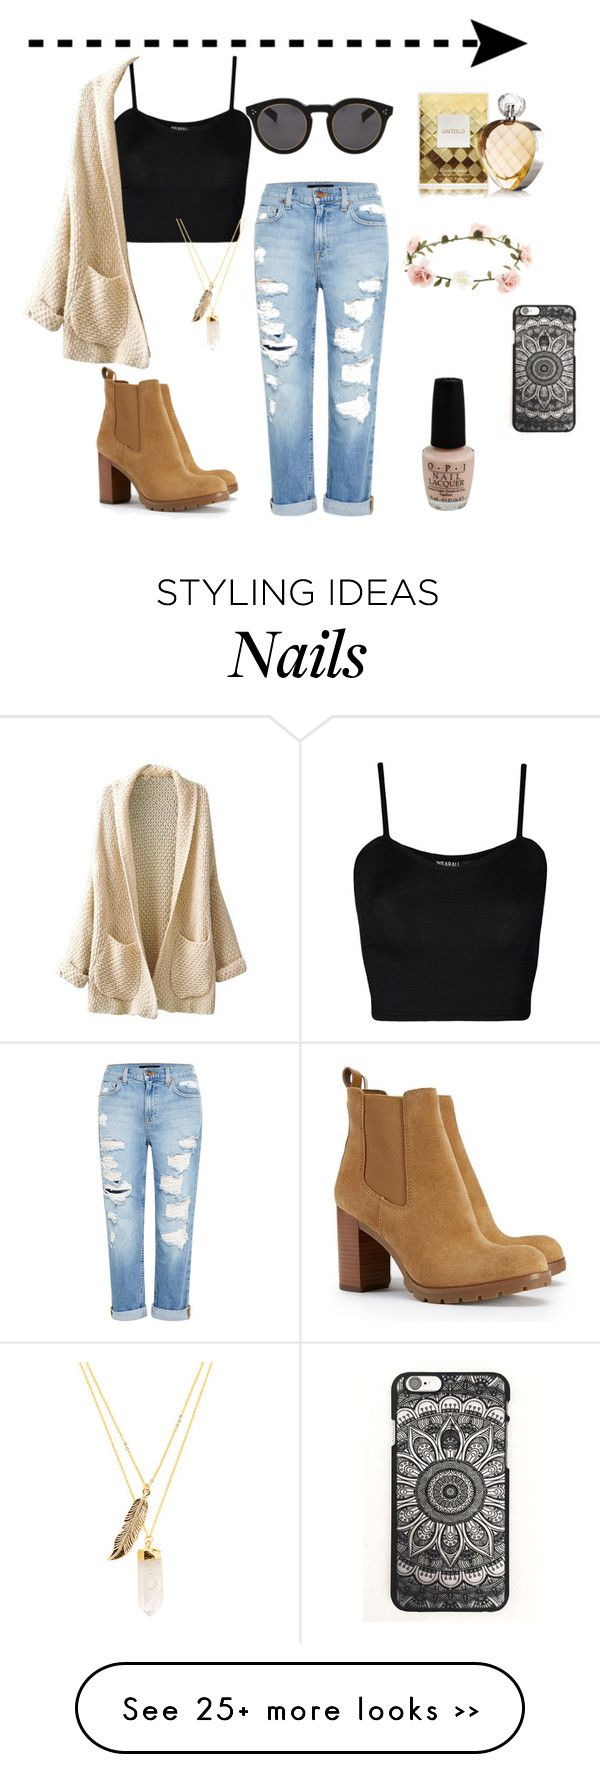 """Casualness"" by bridget-valder on Polyvore featuring WearAll, Illesteva, Genetic Denim, Tory Burch, OPI, Accessorize, Elizabeth Arden and Privileged"